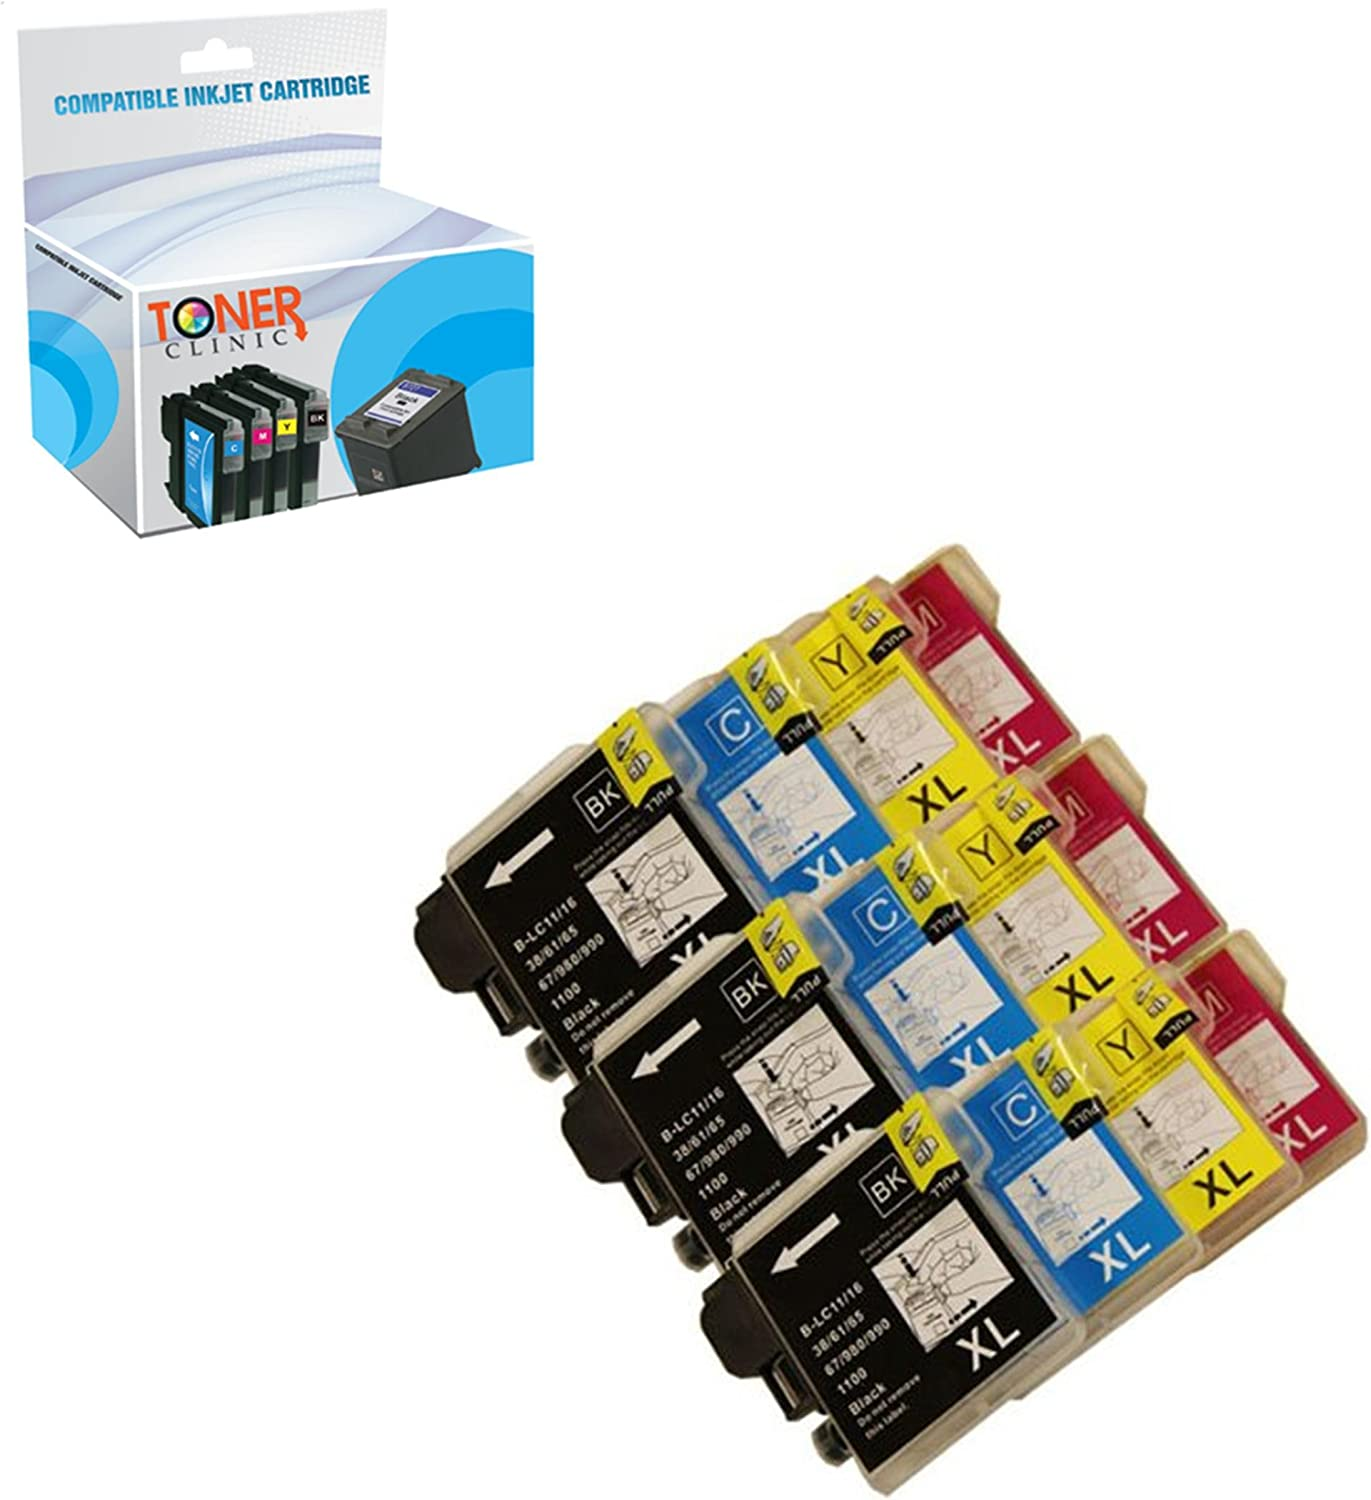 Toner Clinic TC-LC6112PK 3 Black 3 Cyan 3 Magenta 3 Yellow Compatible Inkjet Cartridge for Brother LC-61BK LC-61C LC-61M LC-61Y LC-61 LC-65 DCP-165C DCP-375CW DCP-385CW DCP-395CN DCP-585CW DCP-J125 MFC-250C MFC-255CW MFC-290C MFC-295CN MFC-490CW MFC-495CW